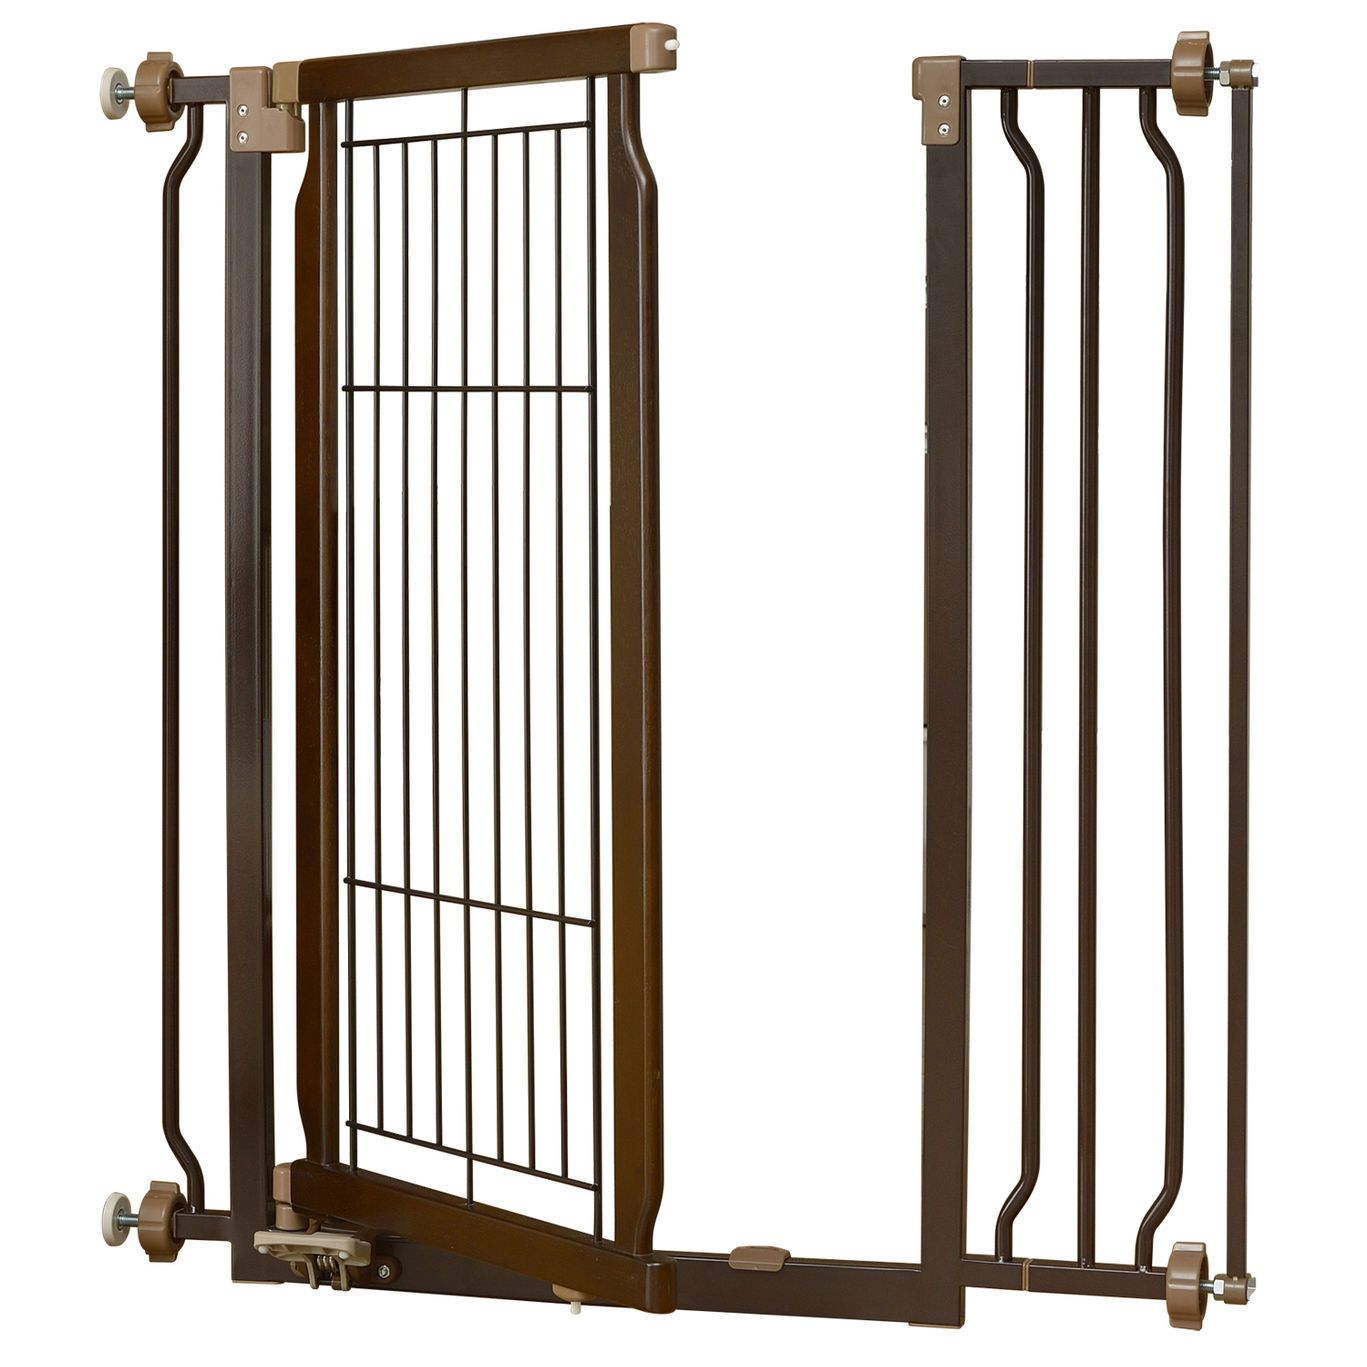 Richell R94903 Hands-free Pressure Mounted Pet Gate